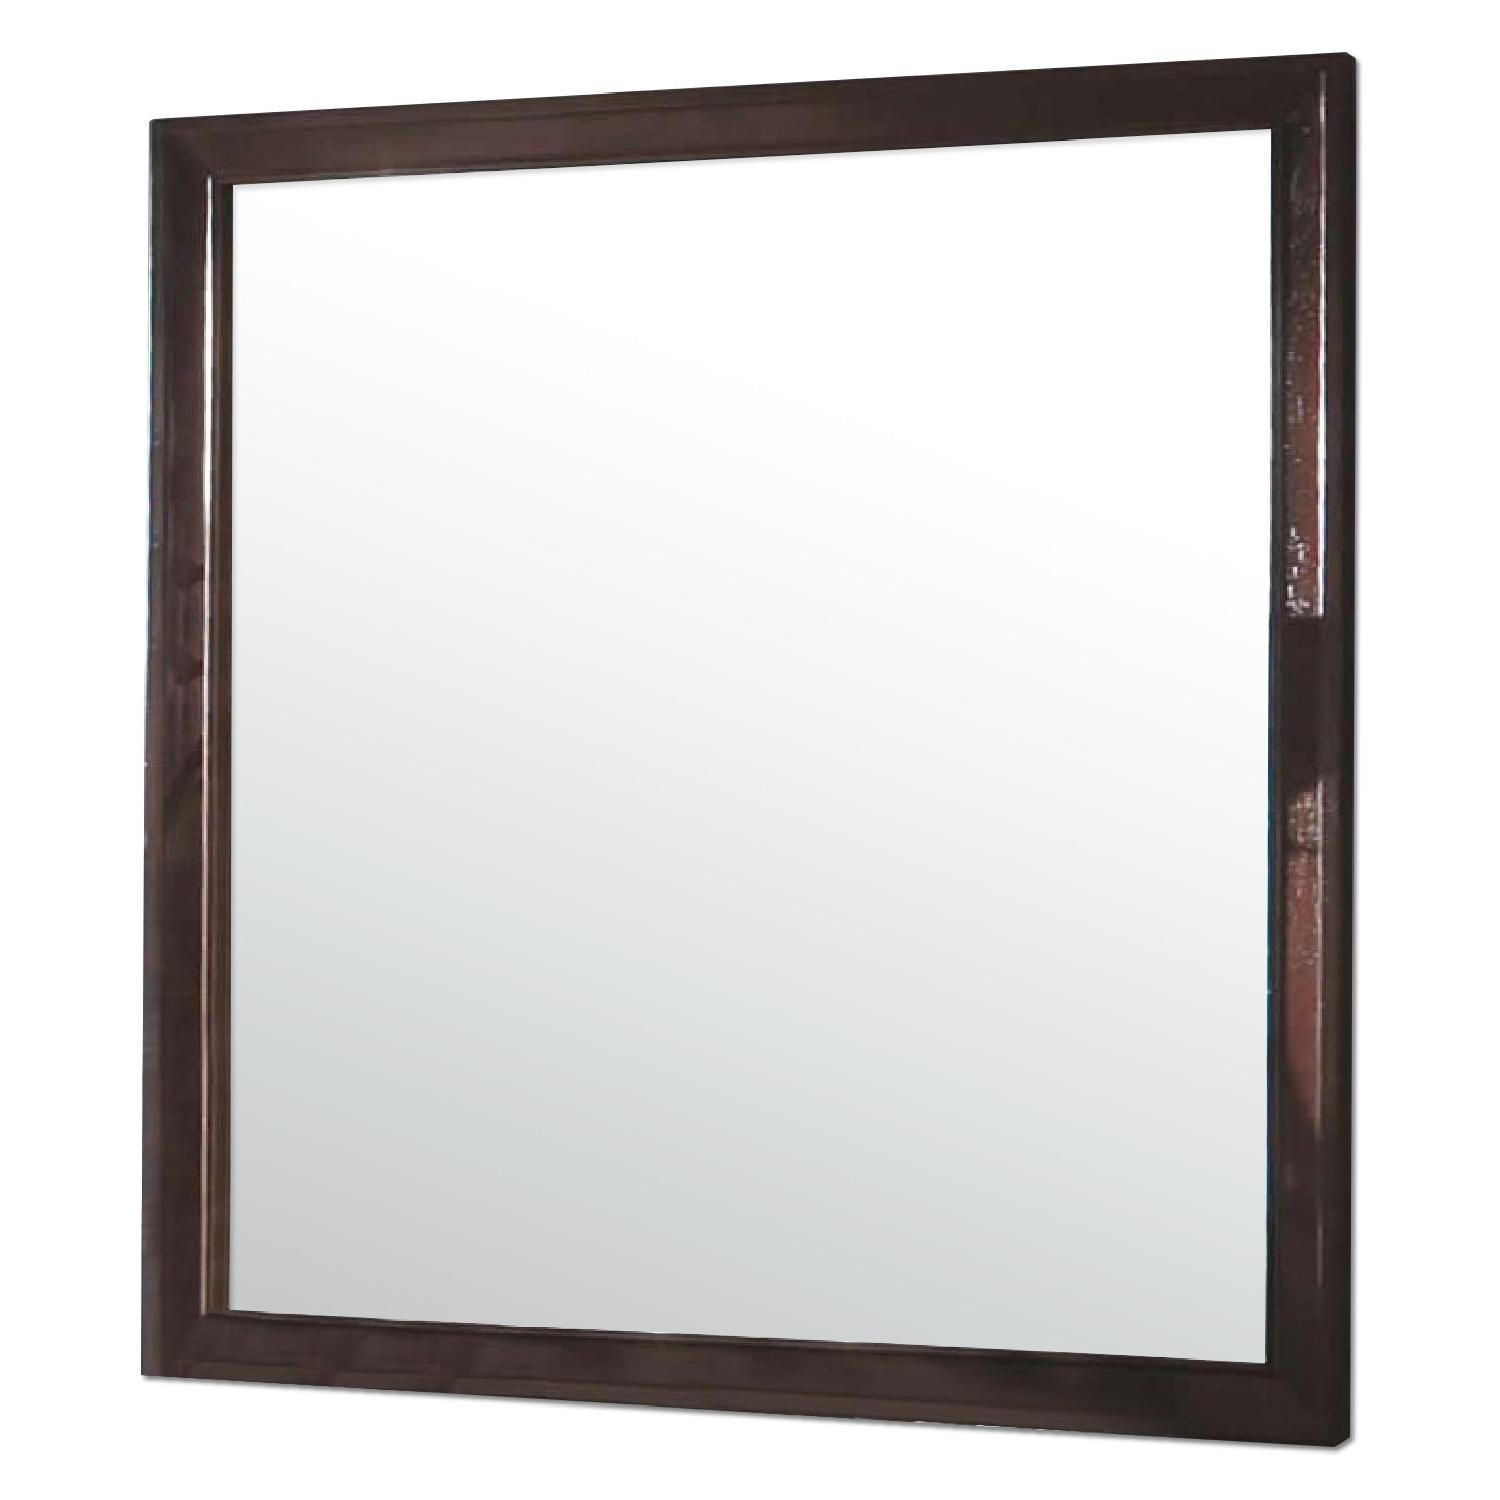 Mirror in Brown Wood Frame - image-0